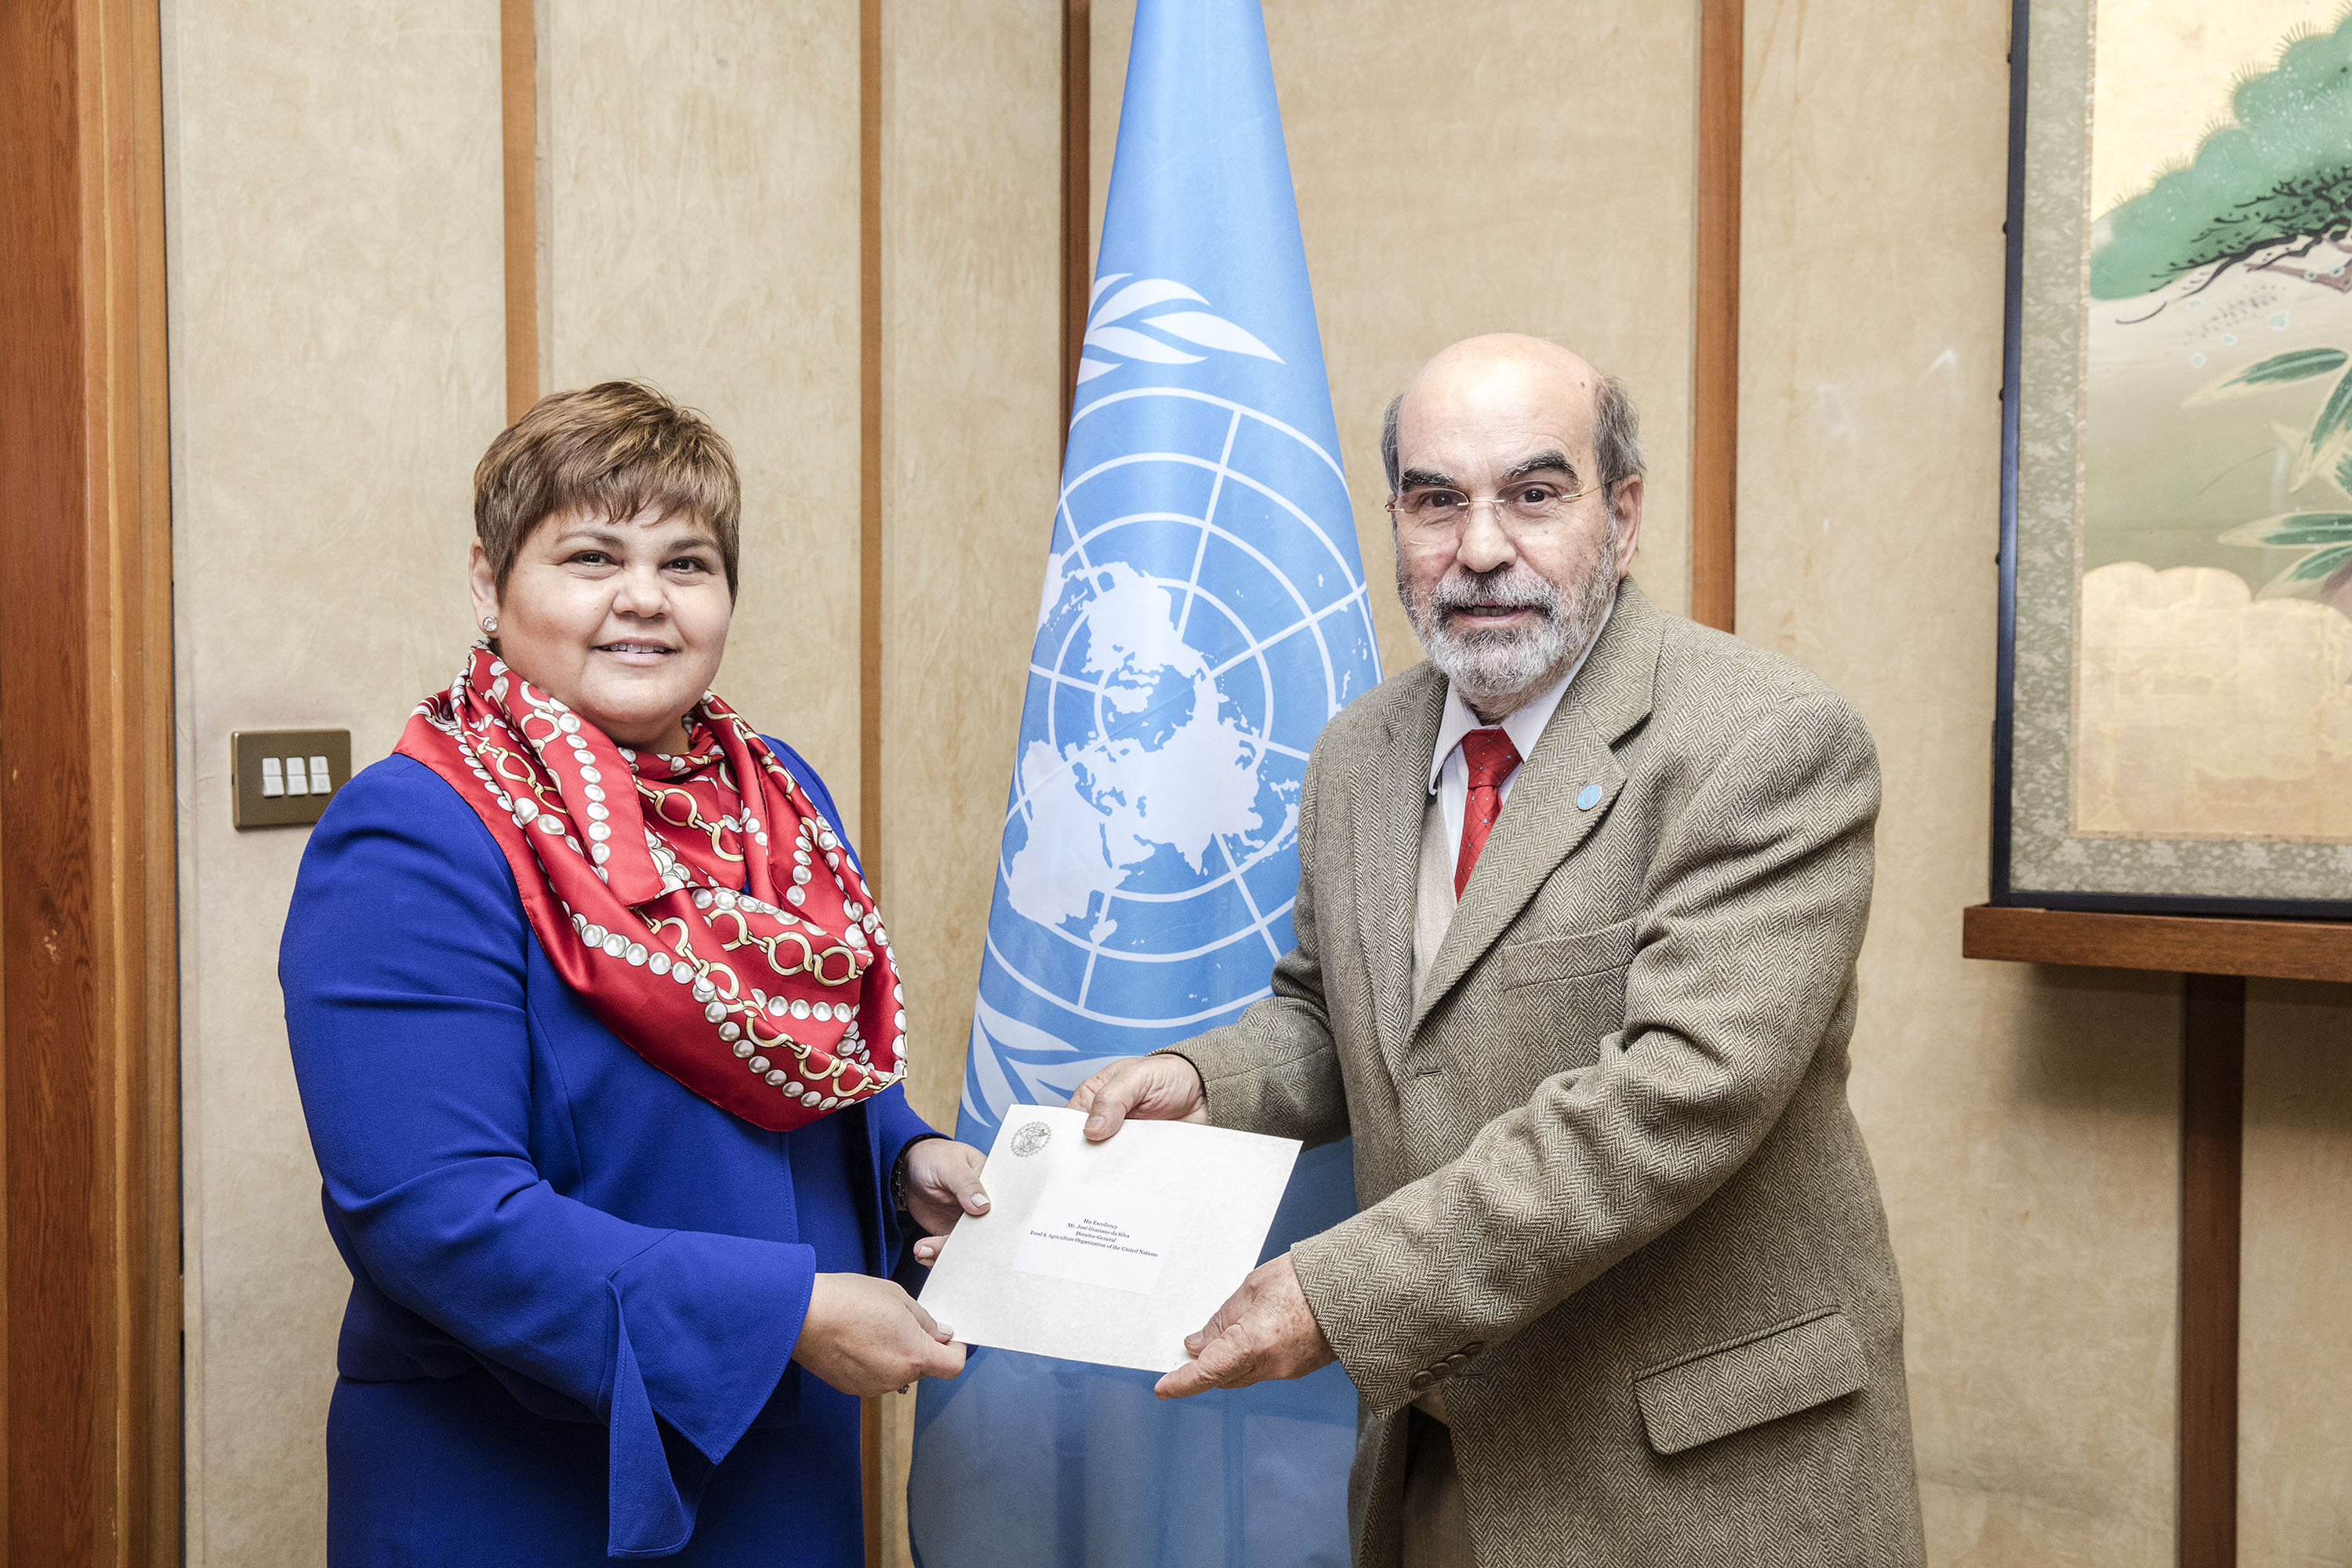 12 February 2018, Rome Italy - Perla Perdomo, Ambassador and Permanent Representative of Belize presenting her Credentials to FAO Director-General Jose' Graziano da Silva. FAO Headquarters.  Photo credit ©FAO/Giulio Napolitano. Editorial use only. Copyright ©FAO